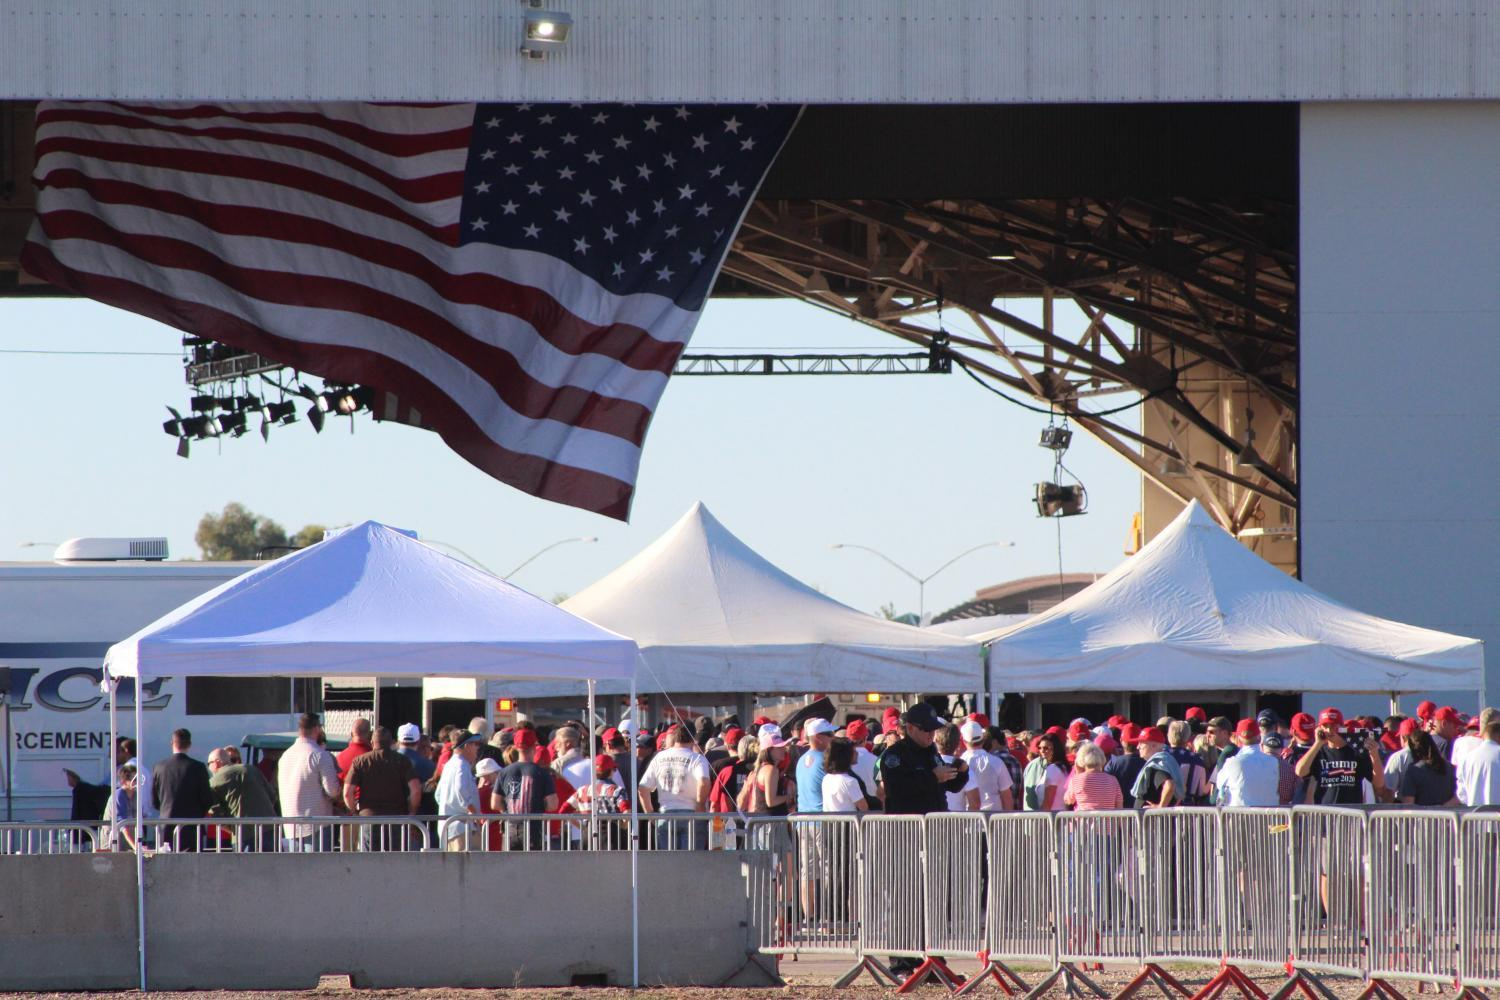 President Donald Trump spoke in Mesa on Friday, Oct. 19. The event drew a large crowd of supporters and a handful of protesters.